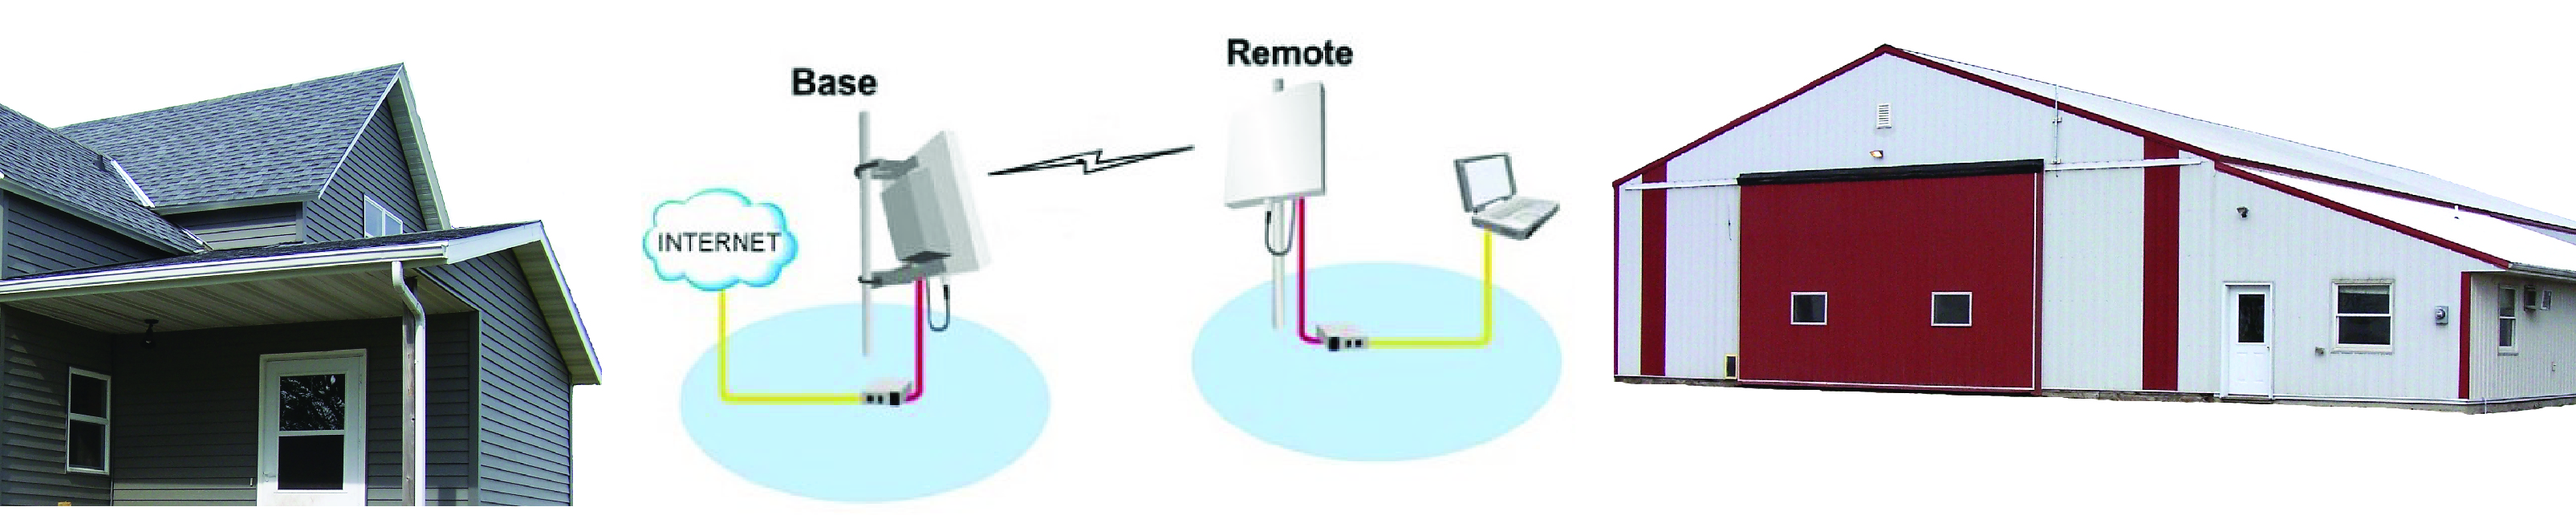 Extend Your Wireless Internet Access To Out Buildings Home Network Diagram Mn